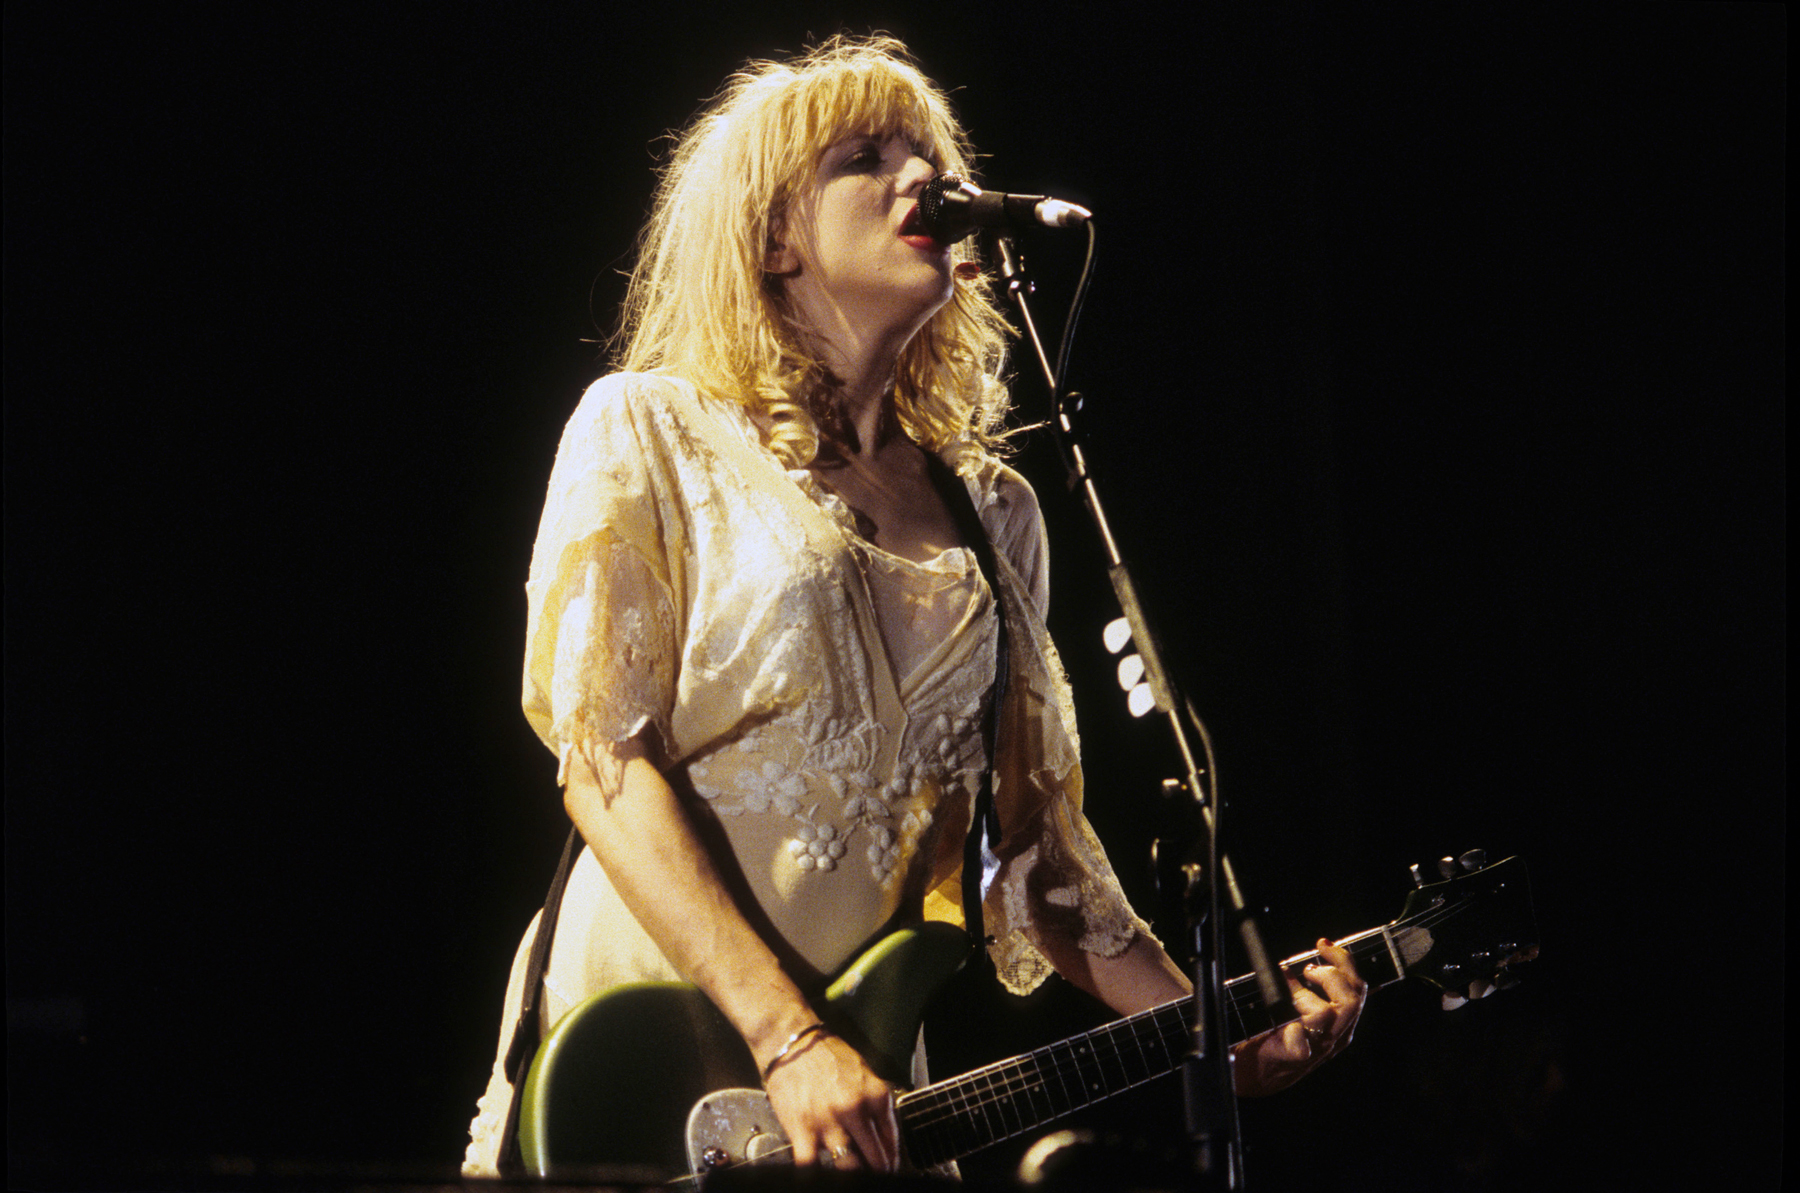 0aafd0a08823 Hole's 'Live Through This' at 25: How Courtney Love Proved Herself ...